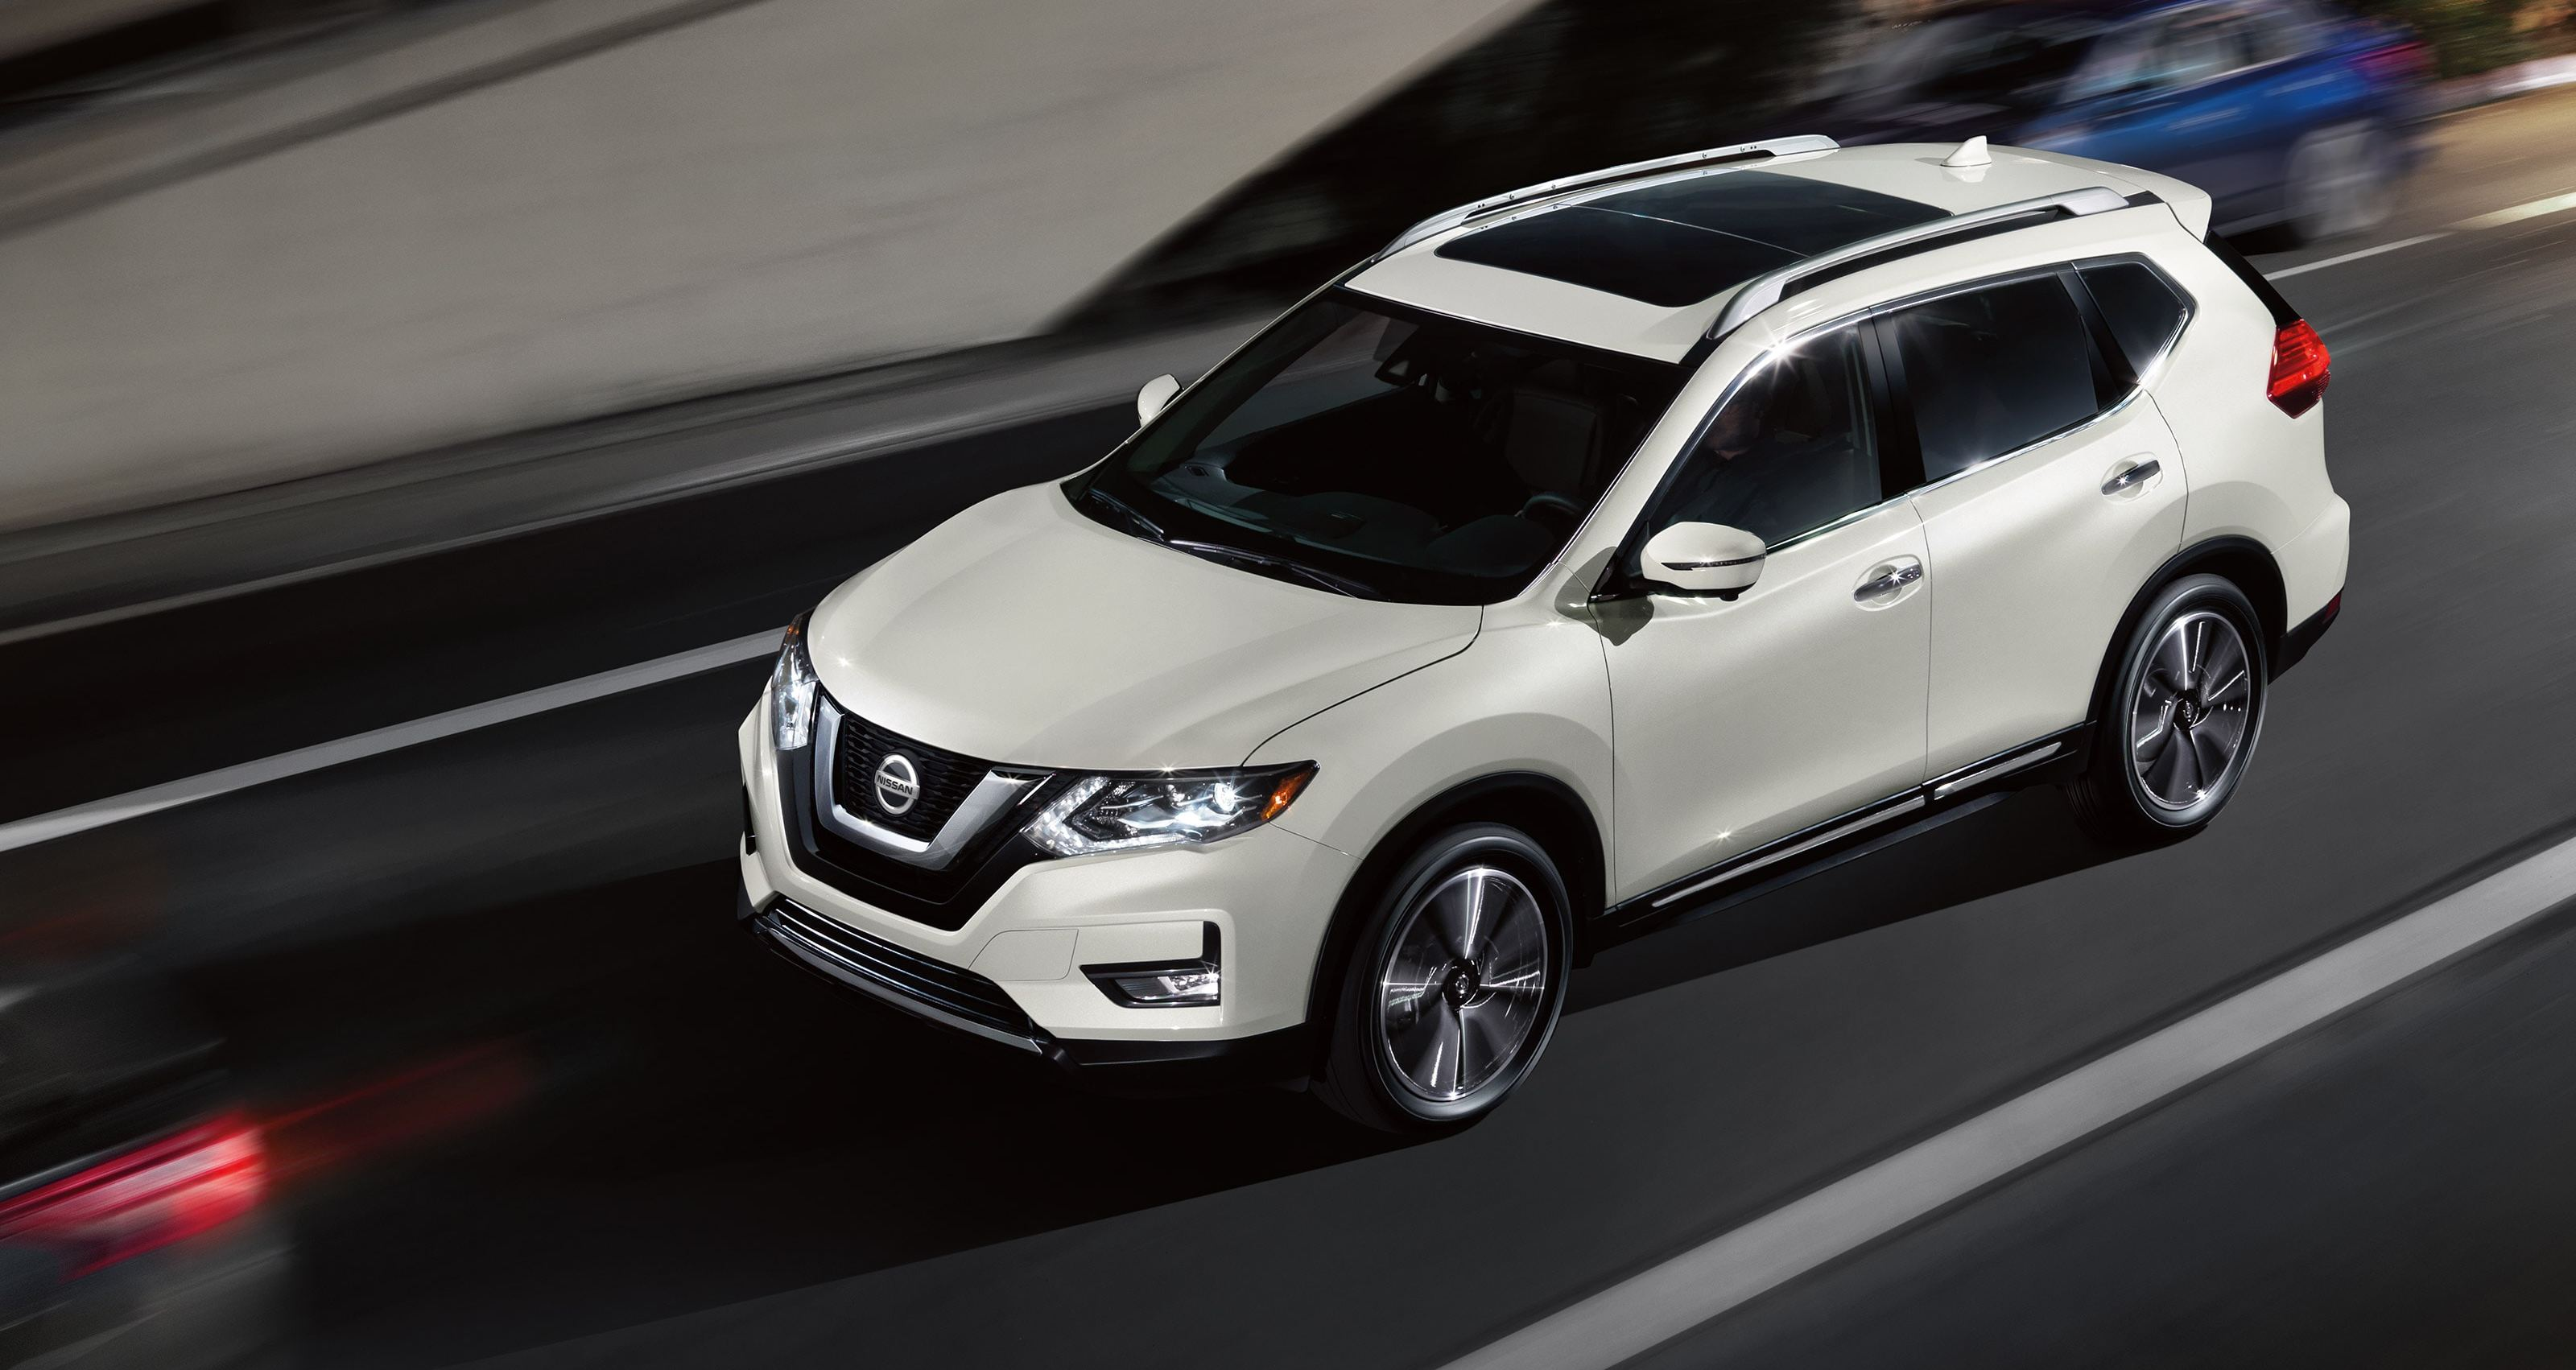 2020 Nissan Rogue Leasing near Morton Grove, IL